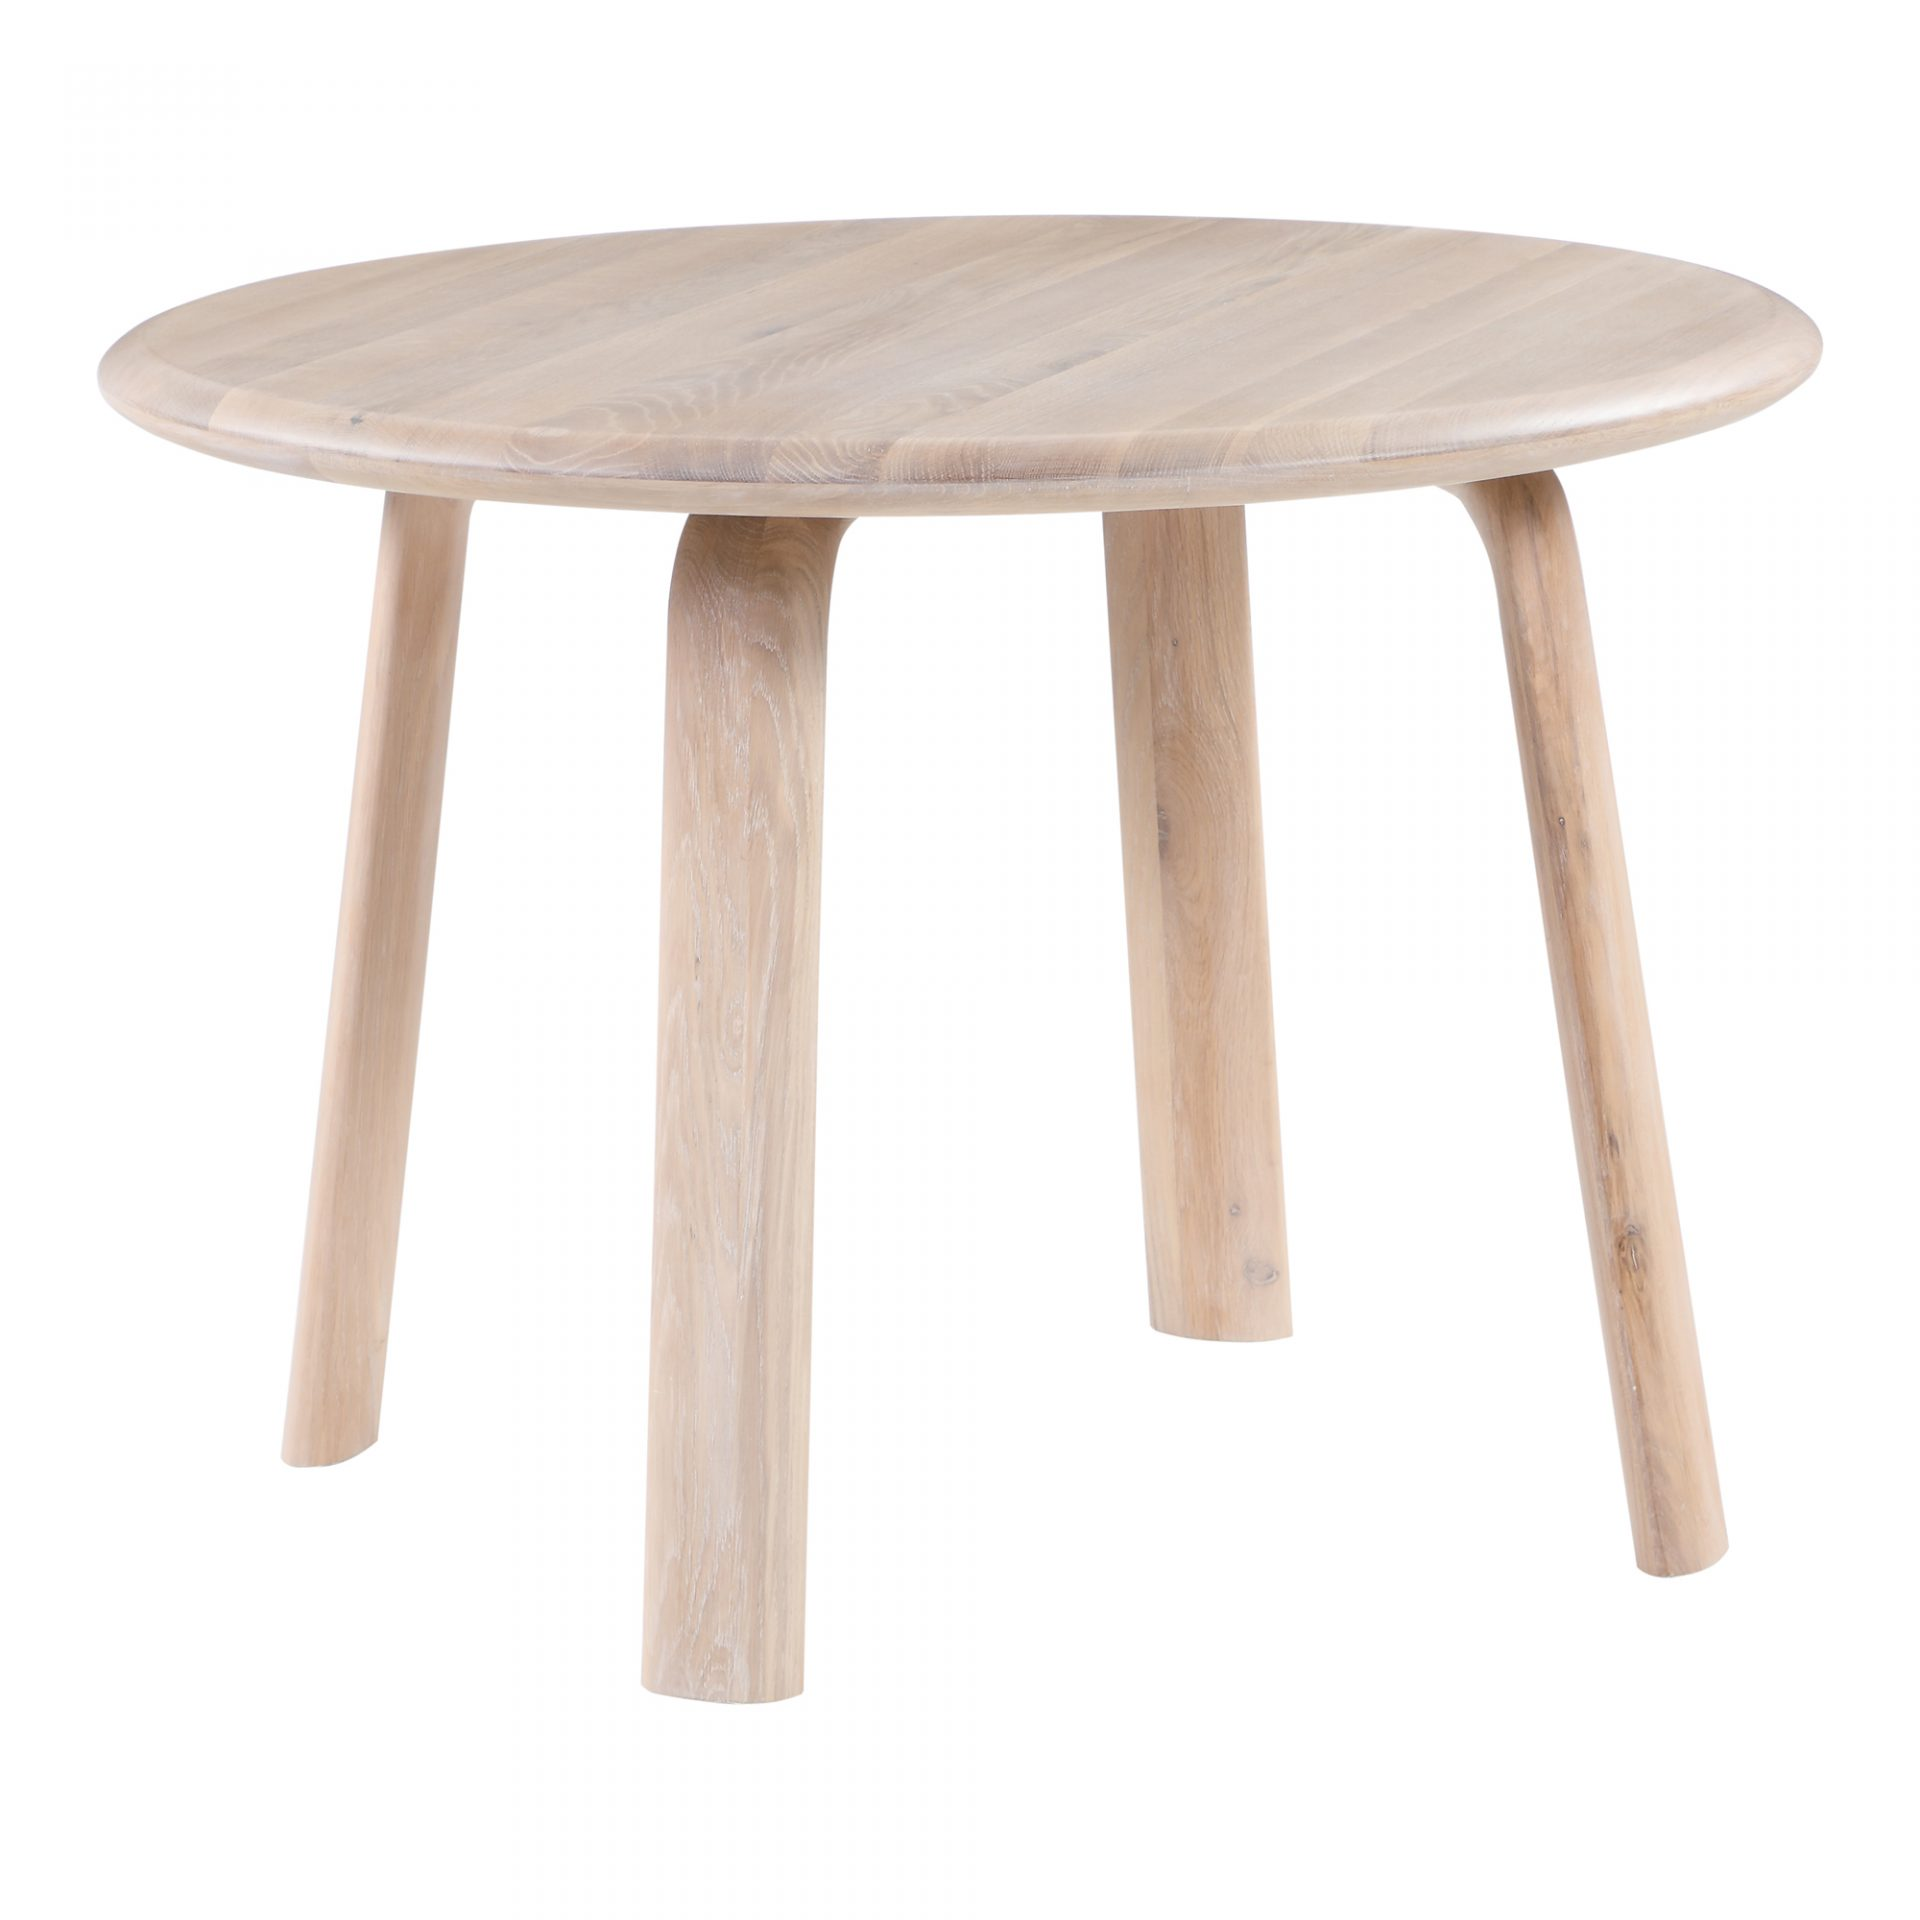 Malibu Round Dining Table by Moe's Home Collection at Stoney Creek Furniture